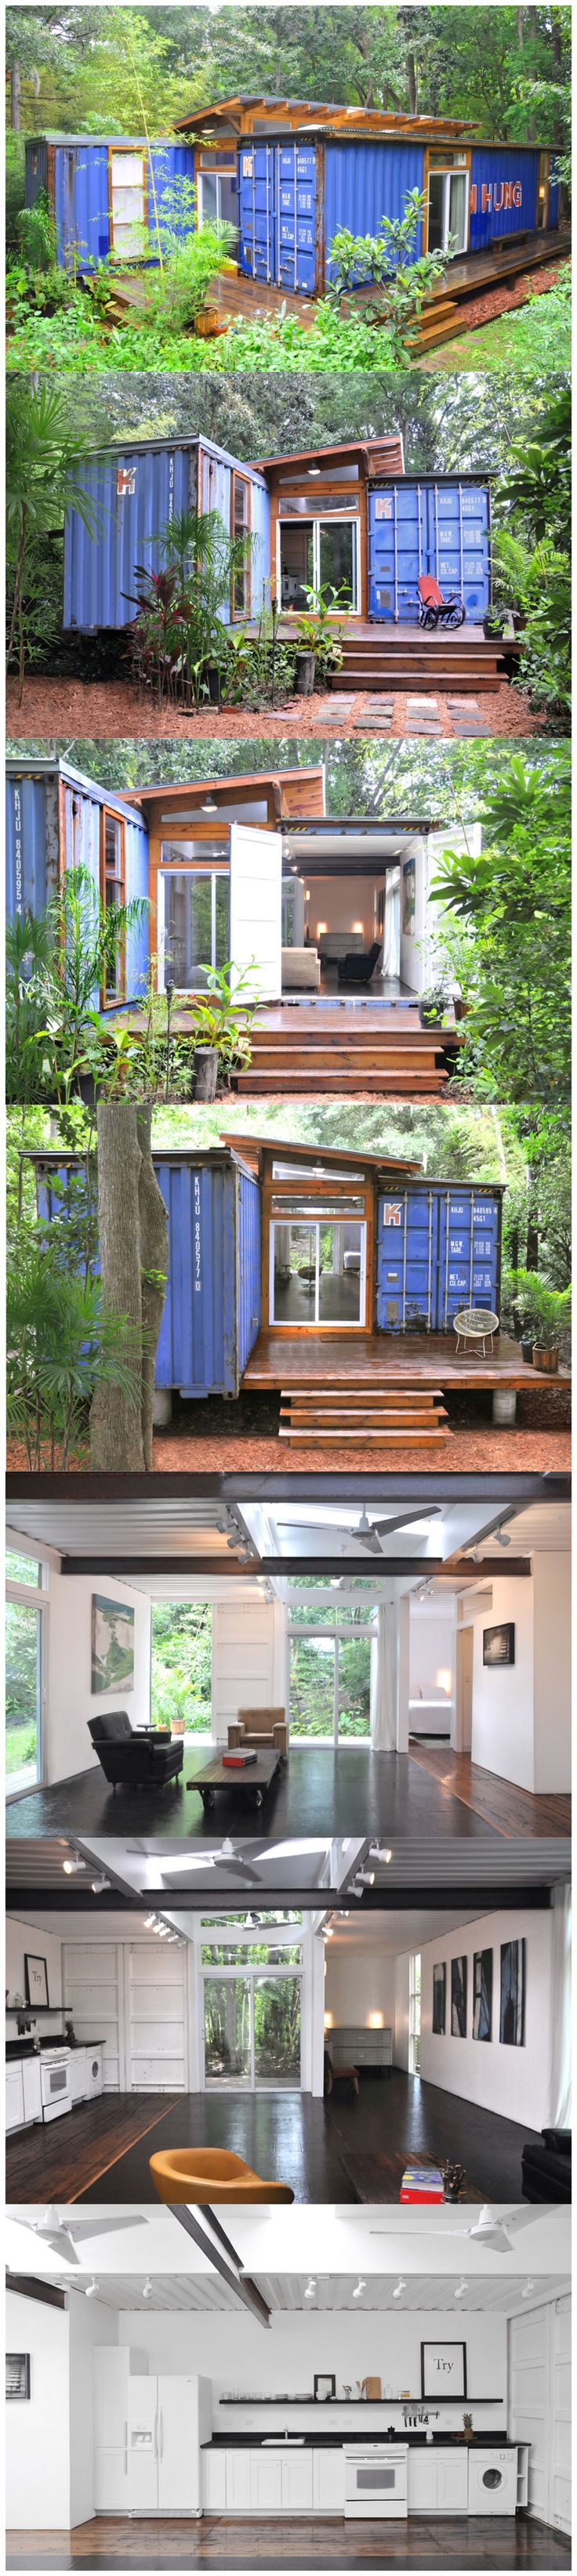 Free via shipping container home savannah project with for Cout container maritime